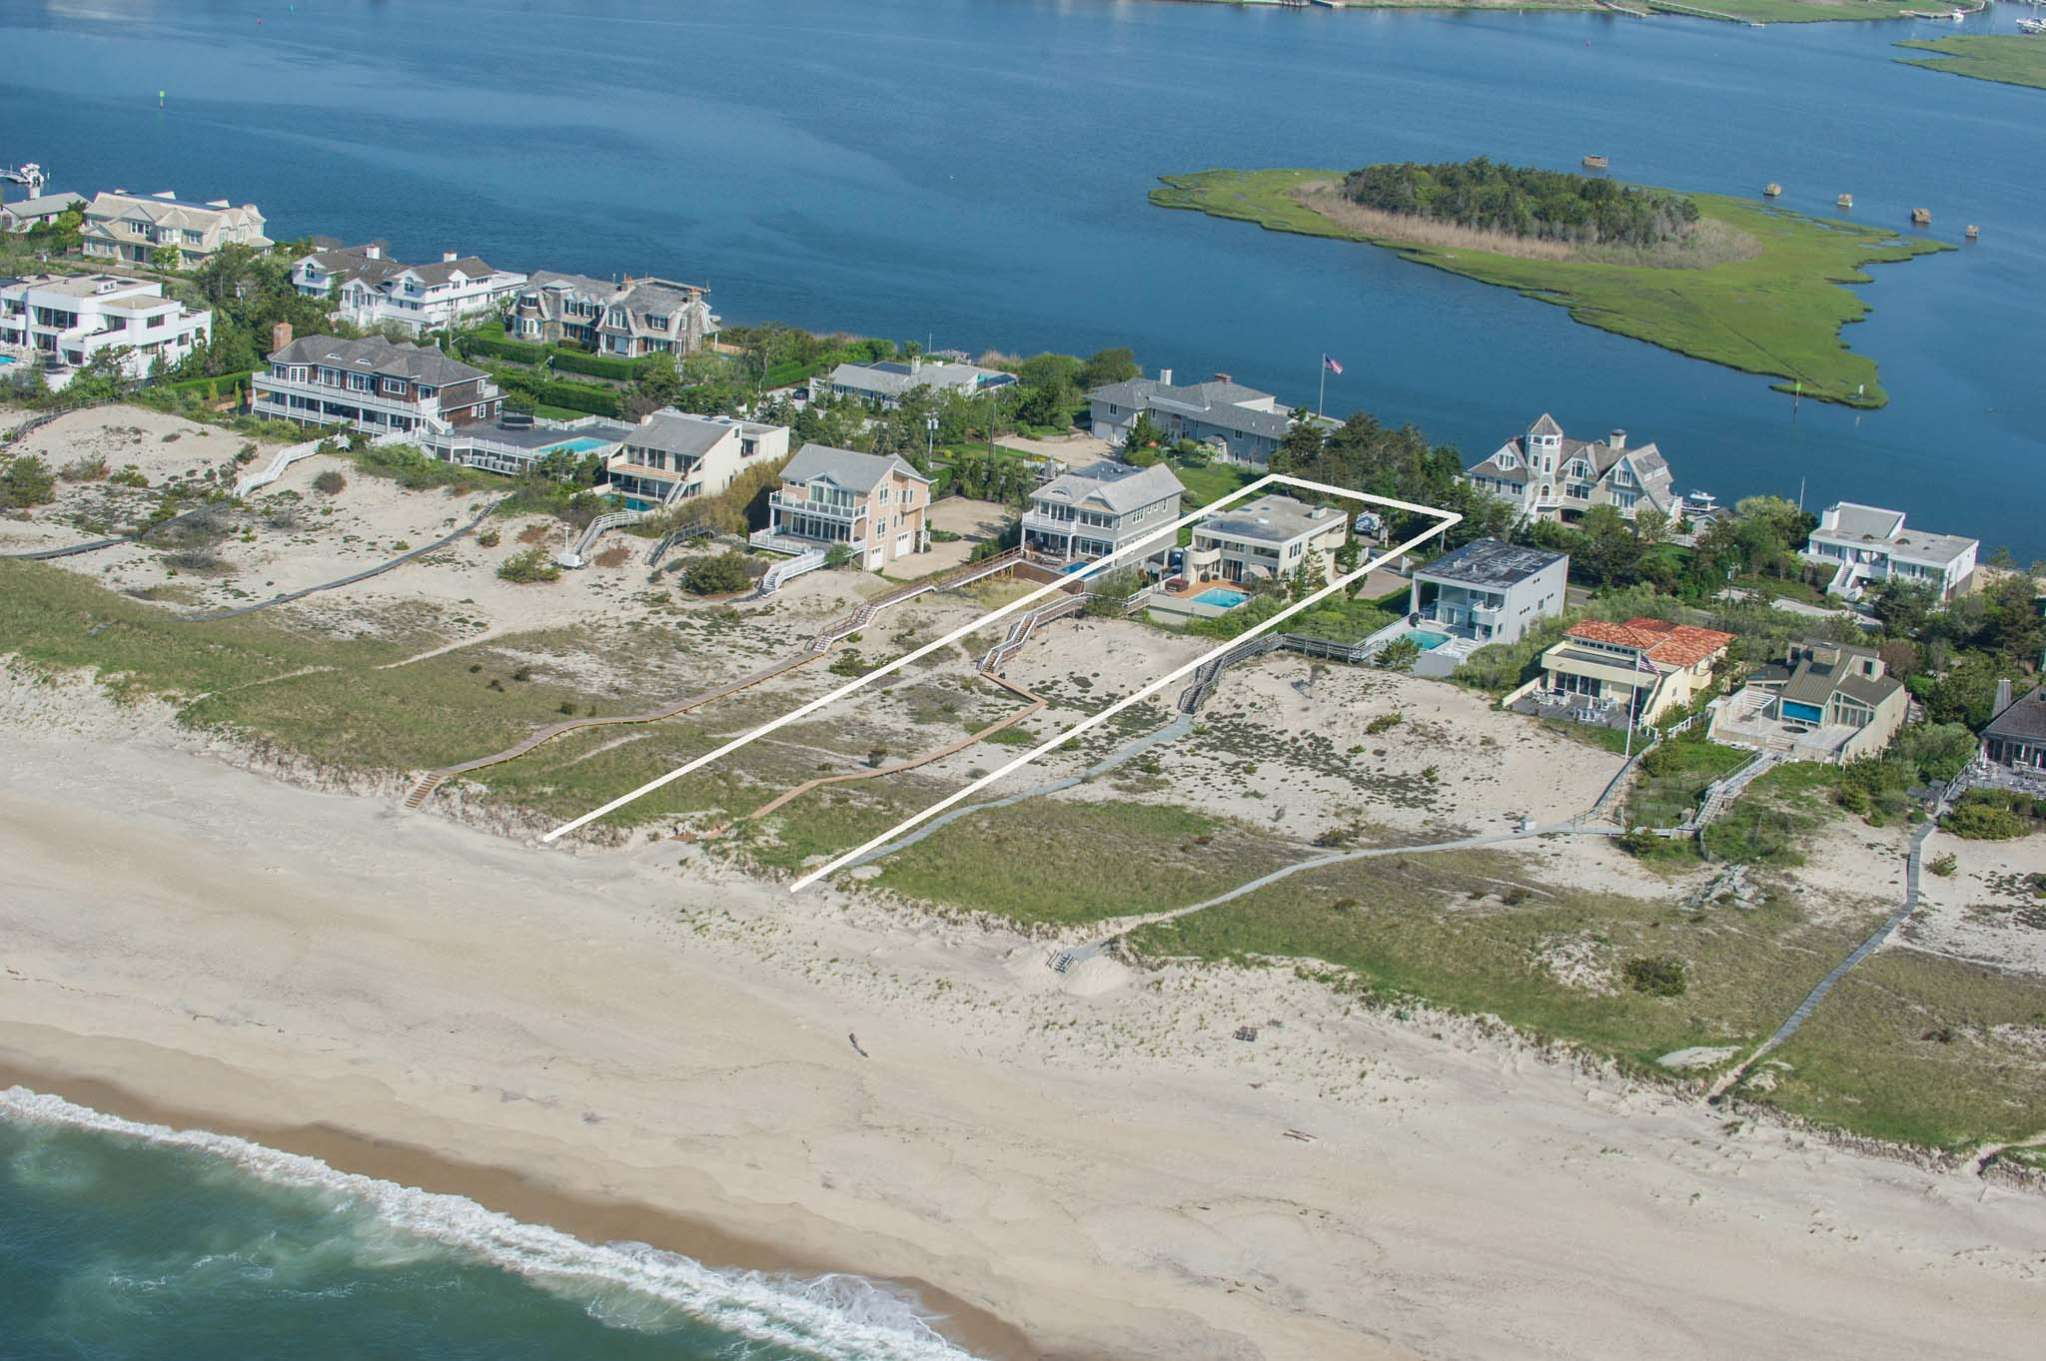 Single Family Home for Sale at Between The Bridges Oceanfront With Pool 165 Dune Road, Westhampton Beach, New York